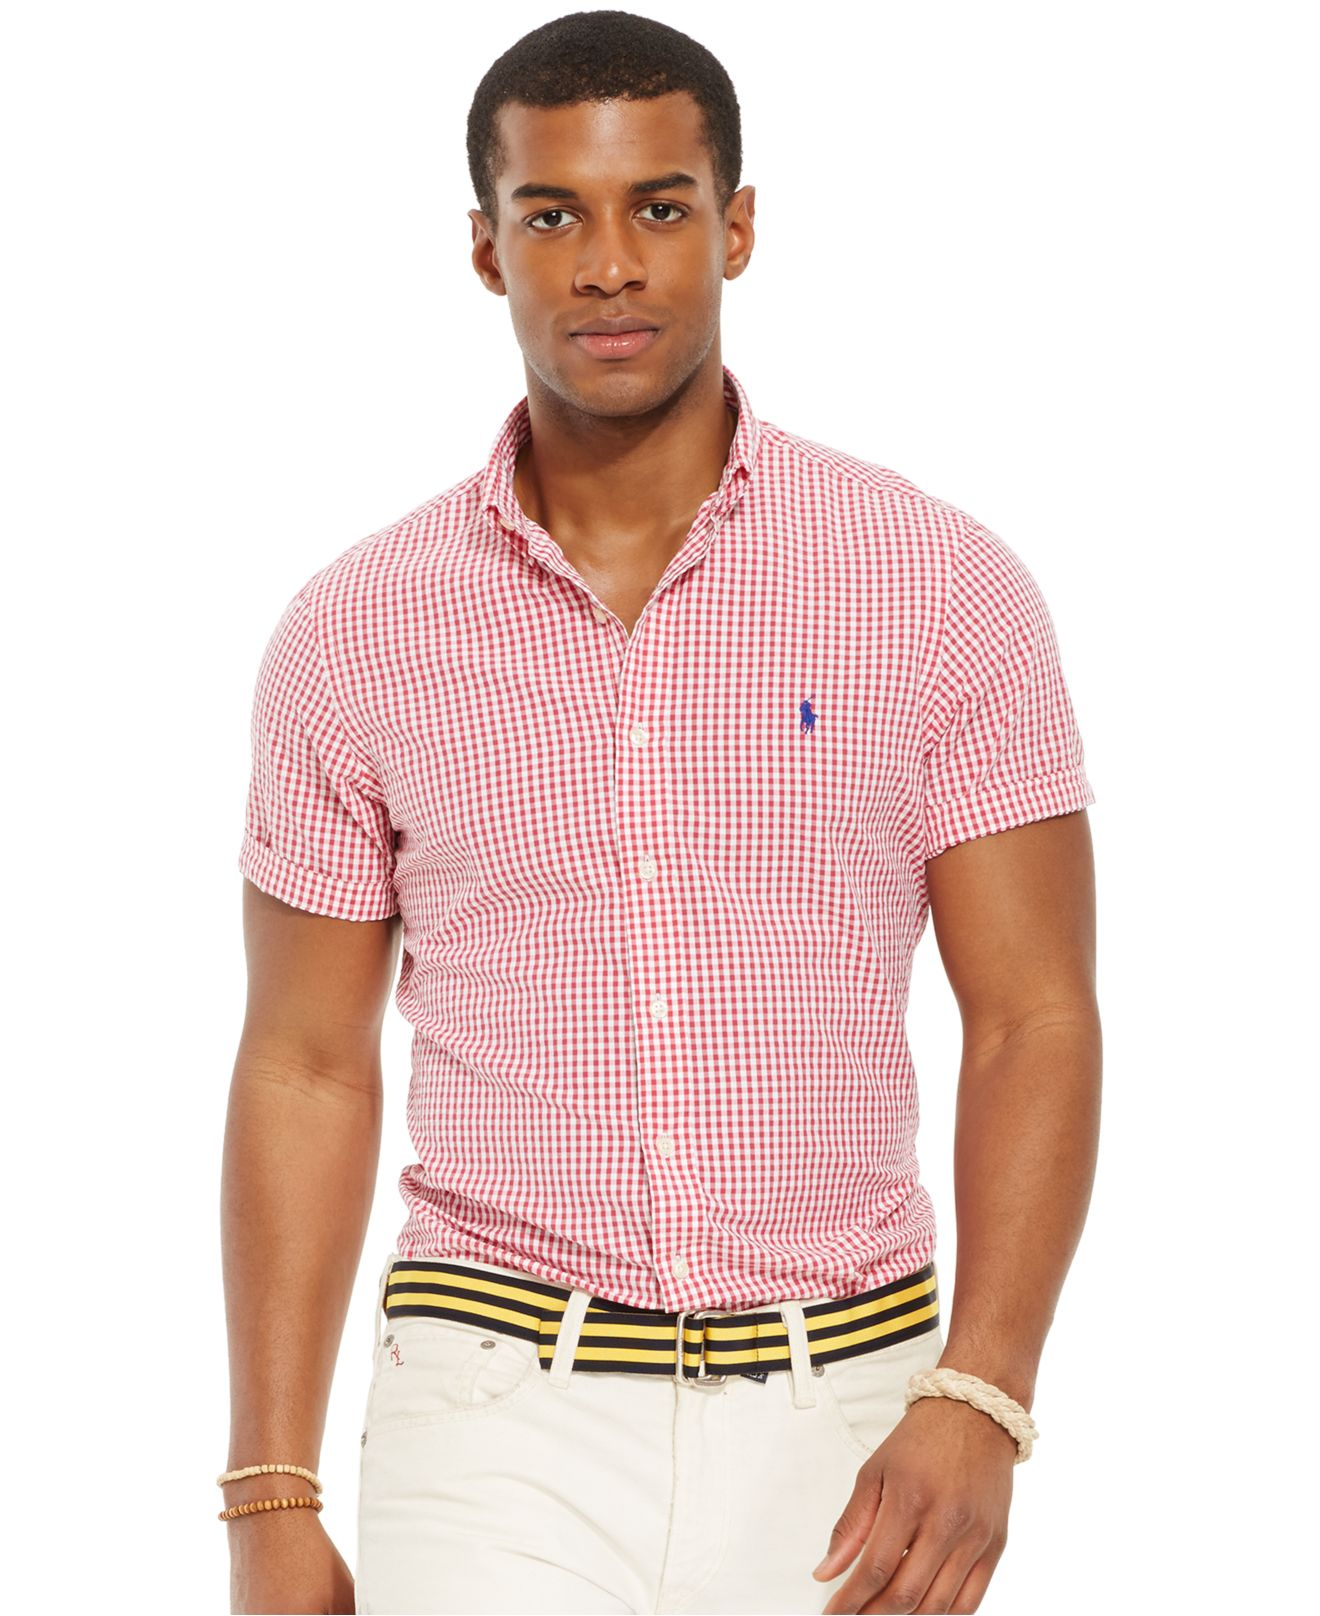 bcc23b02a ... official lyst polo ralph lauren check seersucker shirt in red for men  7ad86 f7a26